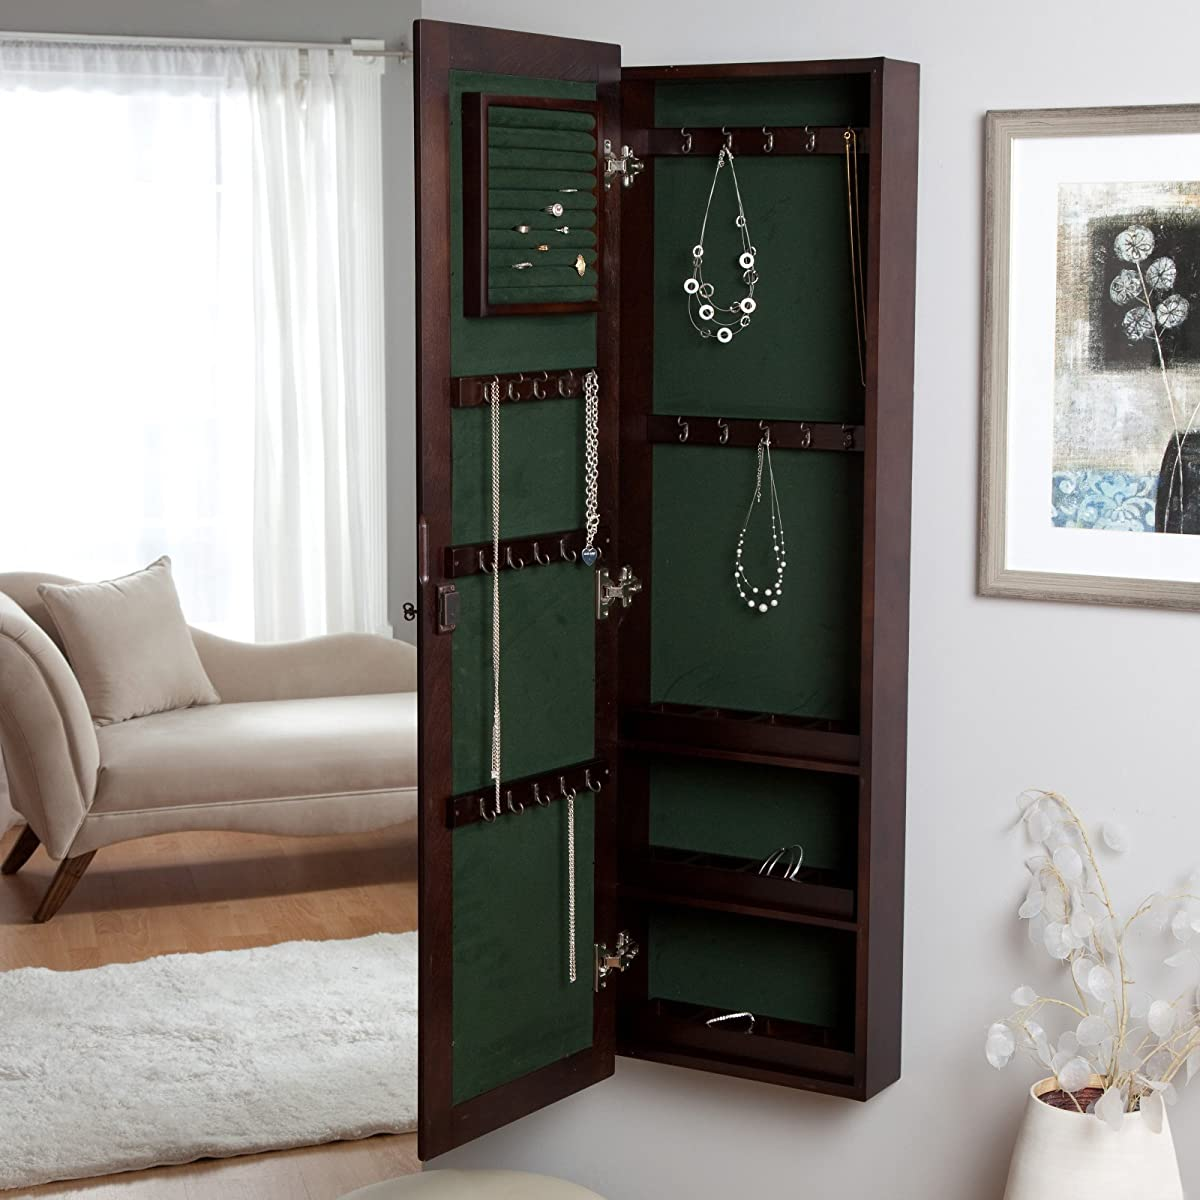 Wall-Mounted Locking Wooden Jewelry Armoire - 14.5W x 50H in.